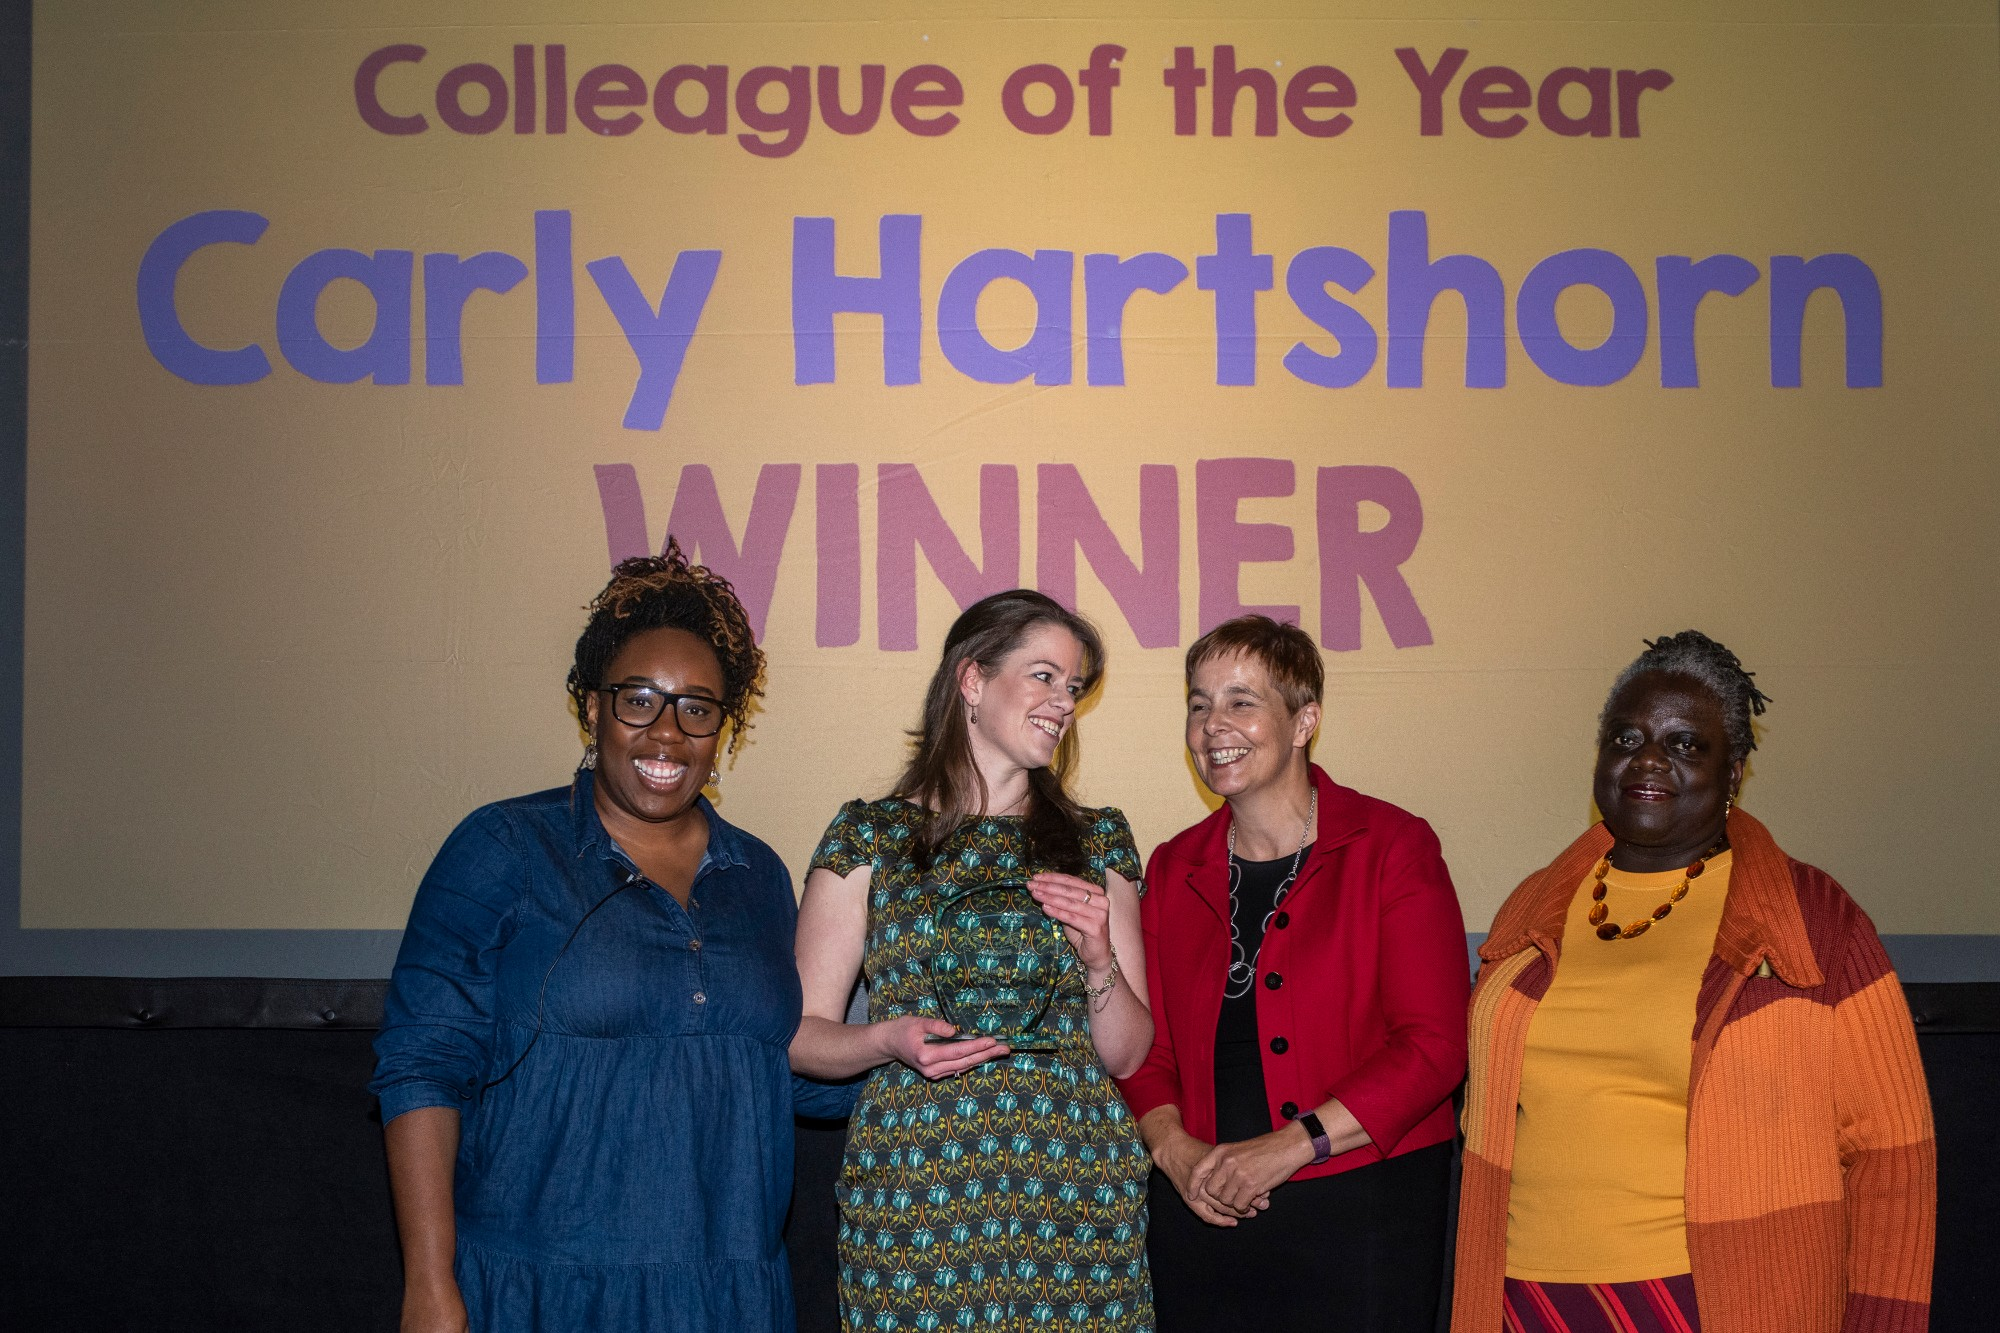 Carly Hartshorn colleague of the year.jpg